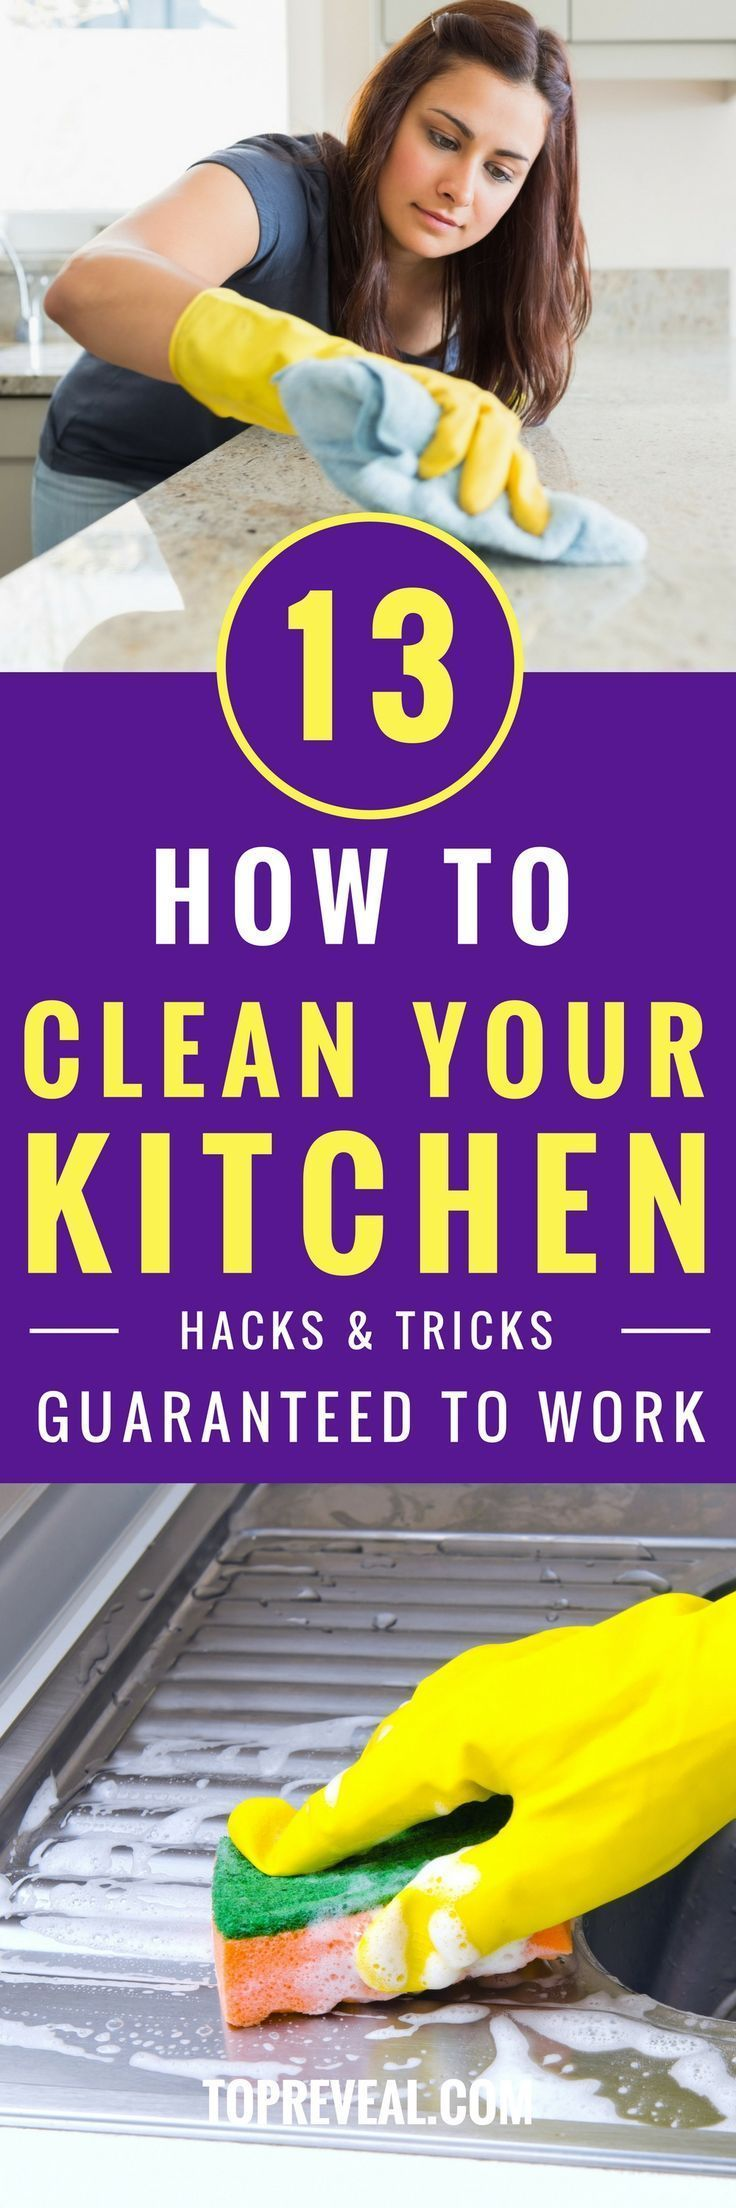 Do you love it when your kitchen sparkles and shines, but hate all the work it takes to get it that way? Well, so do I! Cleaning your kitchen can be time consuming, expensive, and frustrating. You buy all these cleaners and tools, spend hours scrubbing your stove, countertop and refrigerator, and half the time it doesn't even work. #kitchen #kitchenimprovement #homeimprovement #housekeeping #cleaning #kitchencleaning